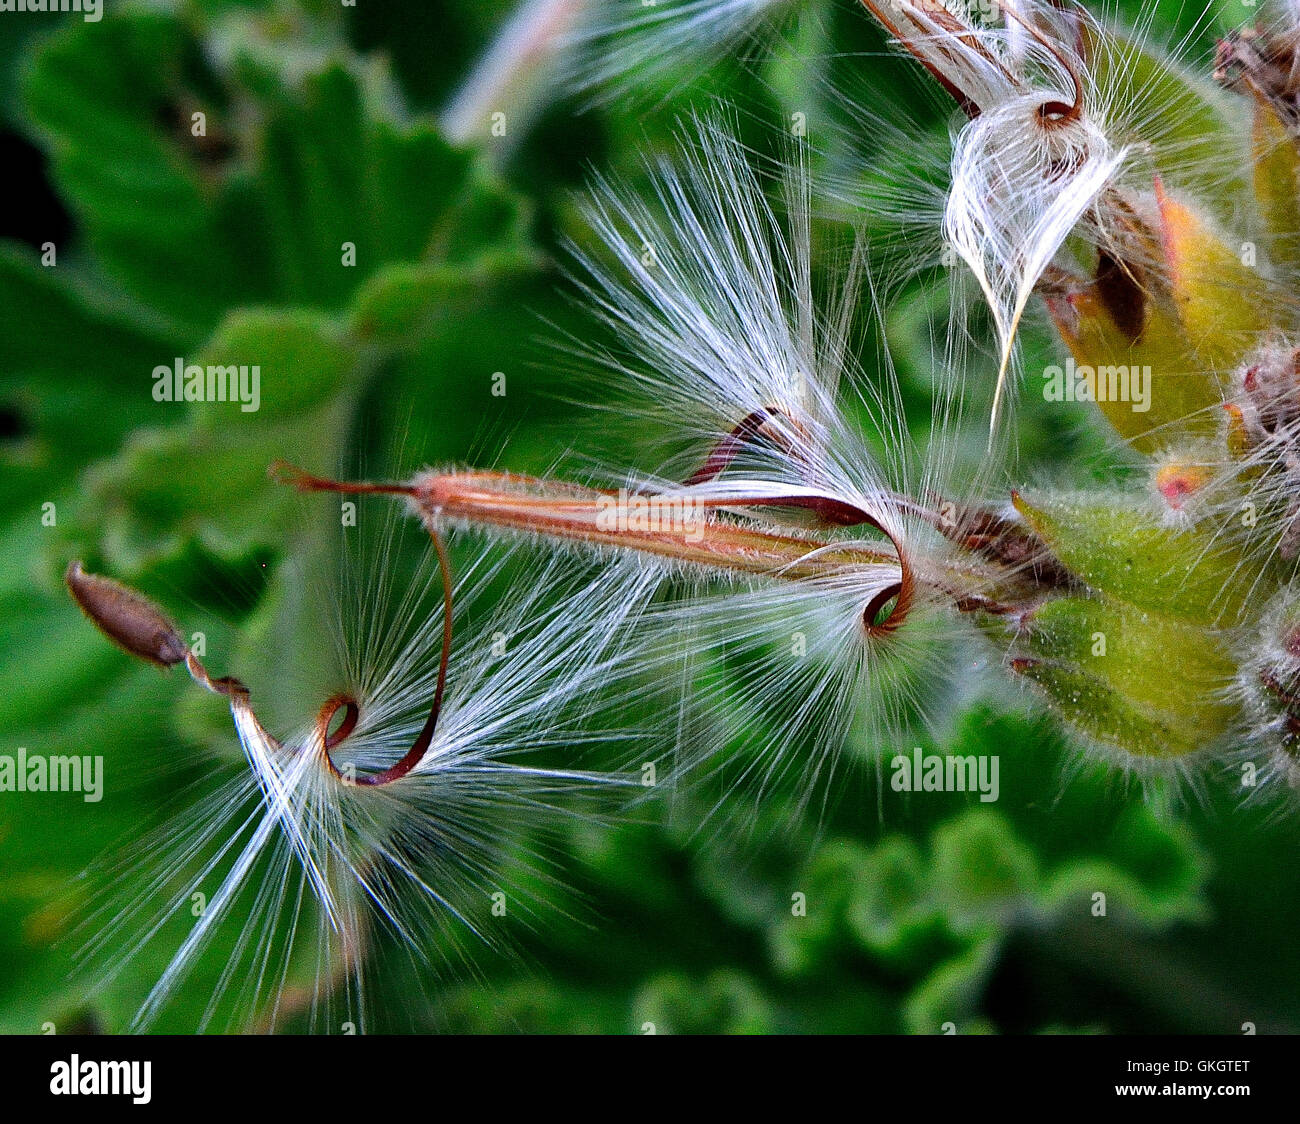 Twisting Geranium seeds ready to parachute into the wind for distribution - Stock Image